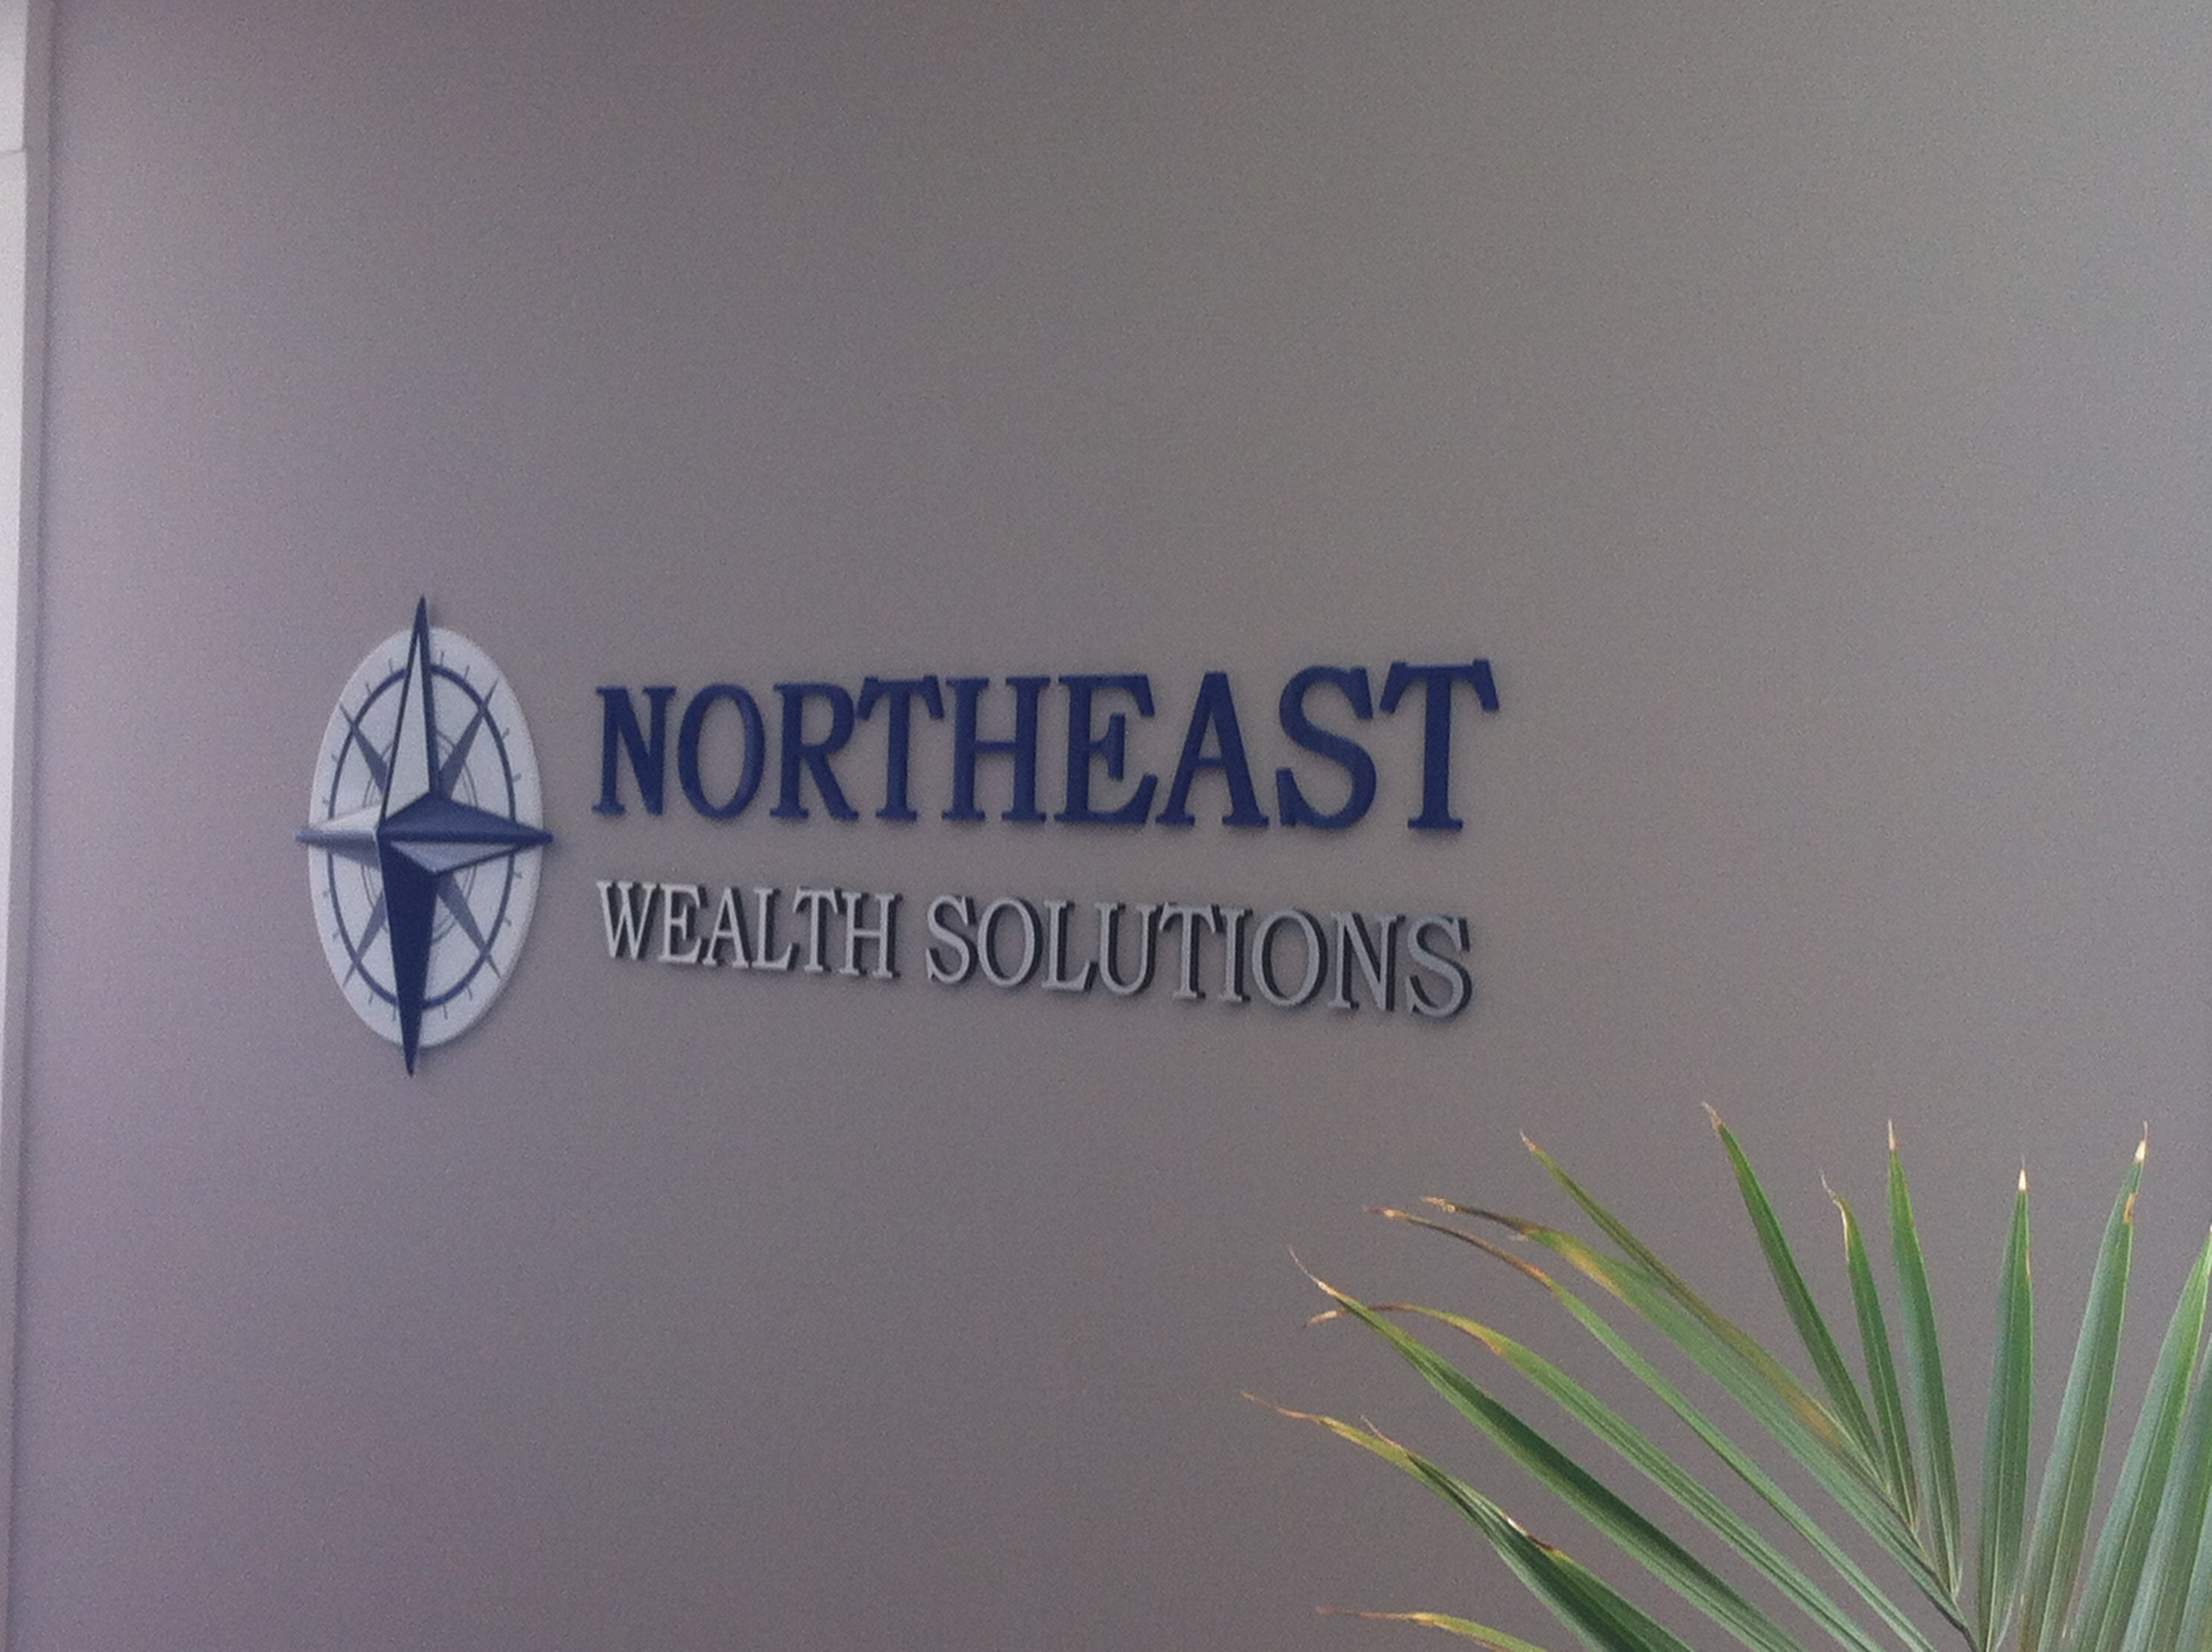 Northeast Wealth Solutions